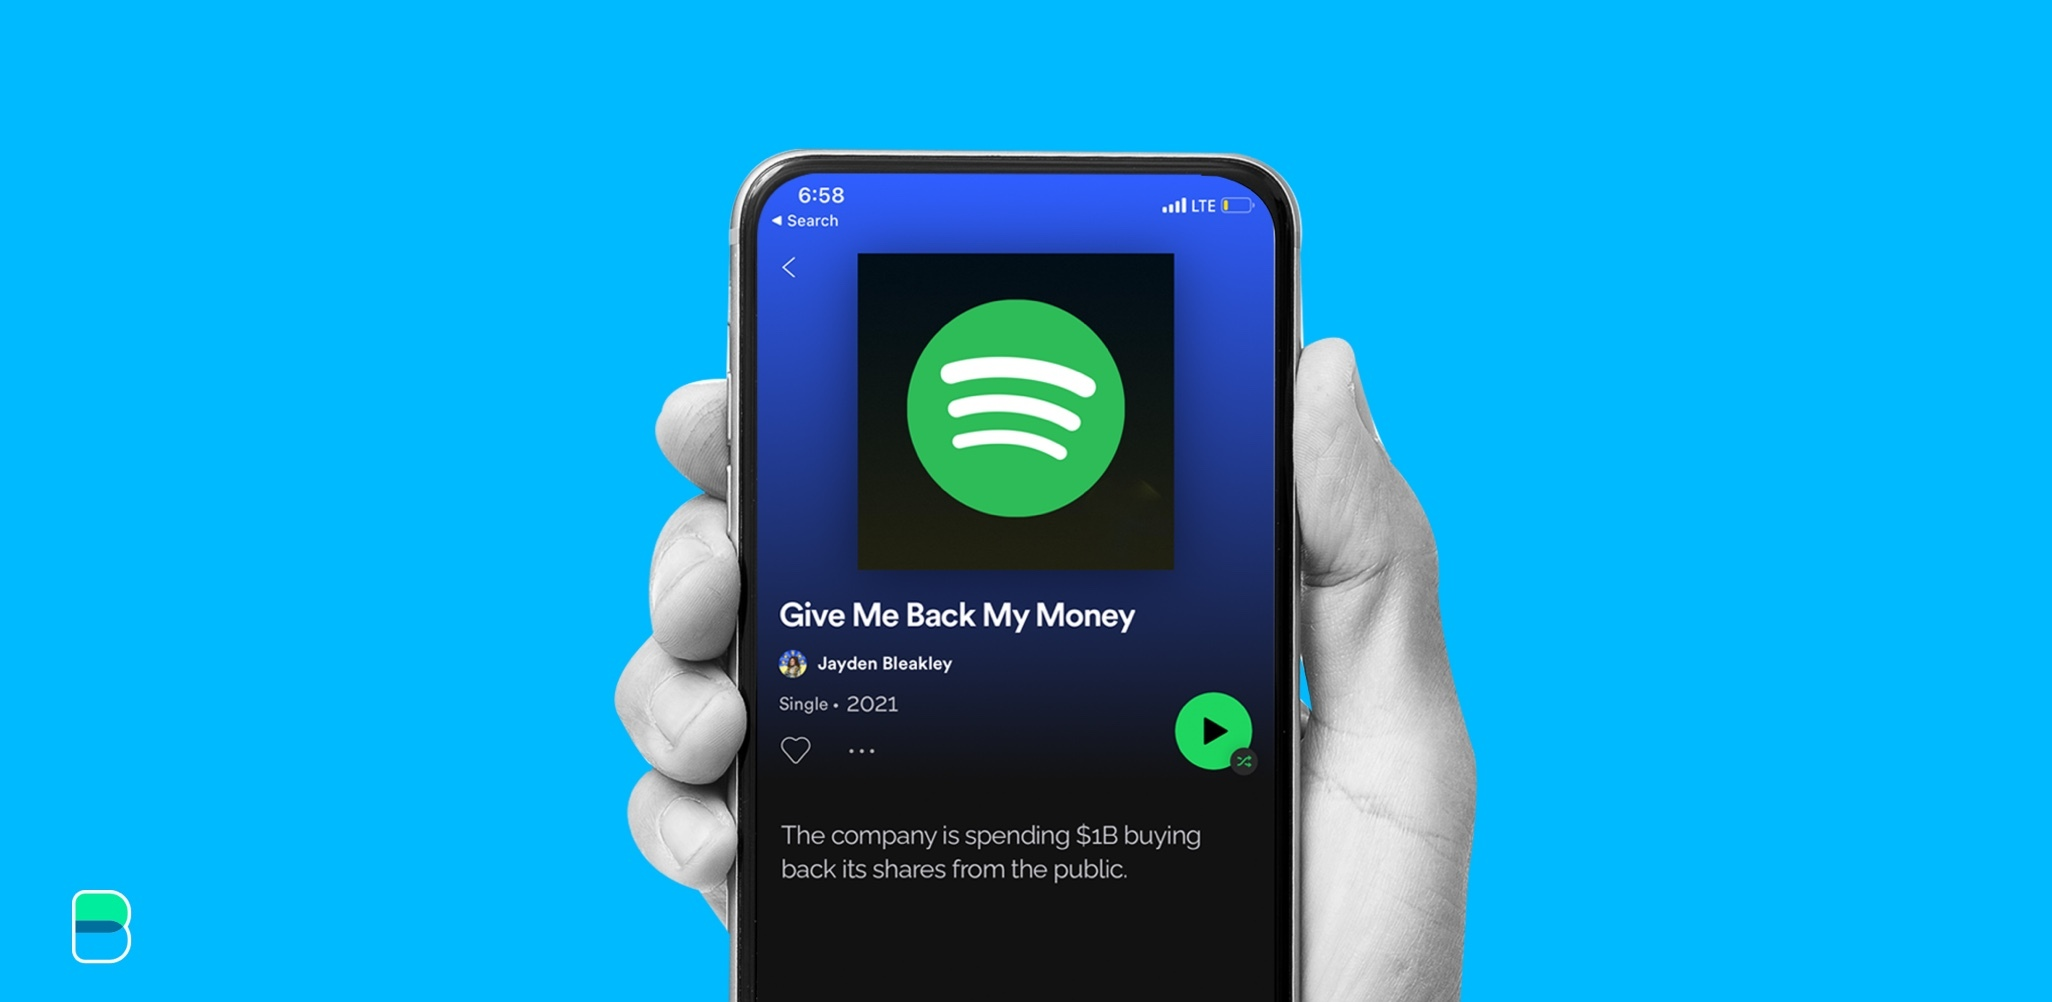 Spotify wants to take back what's theirs